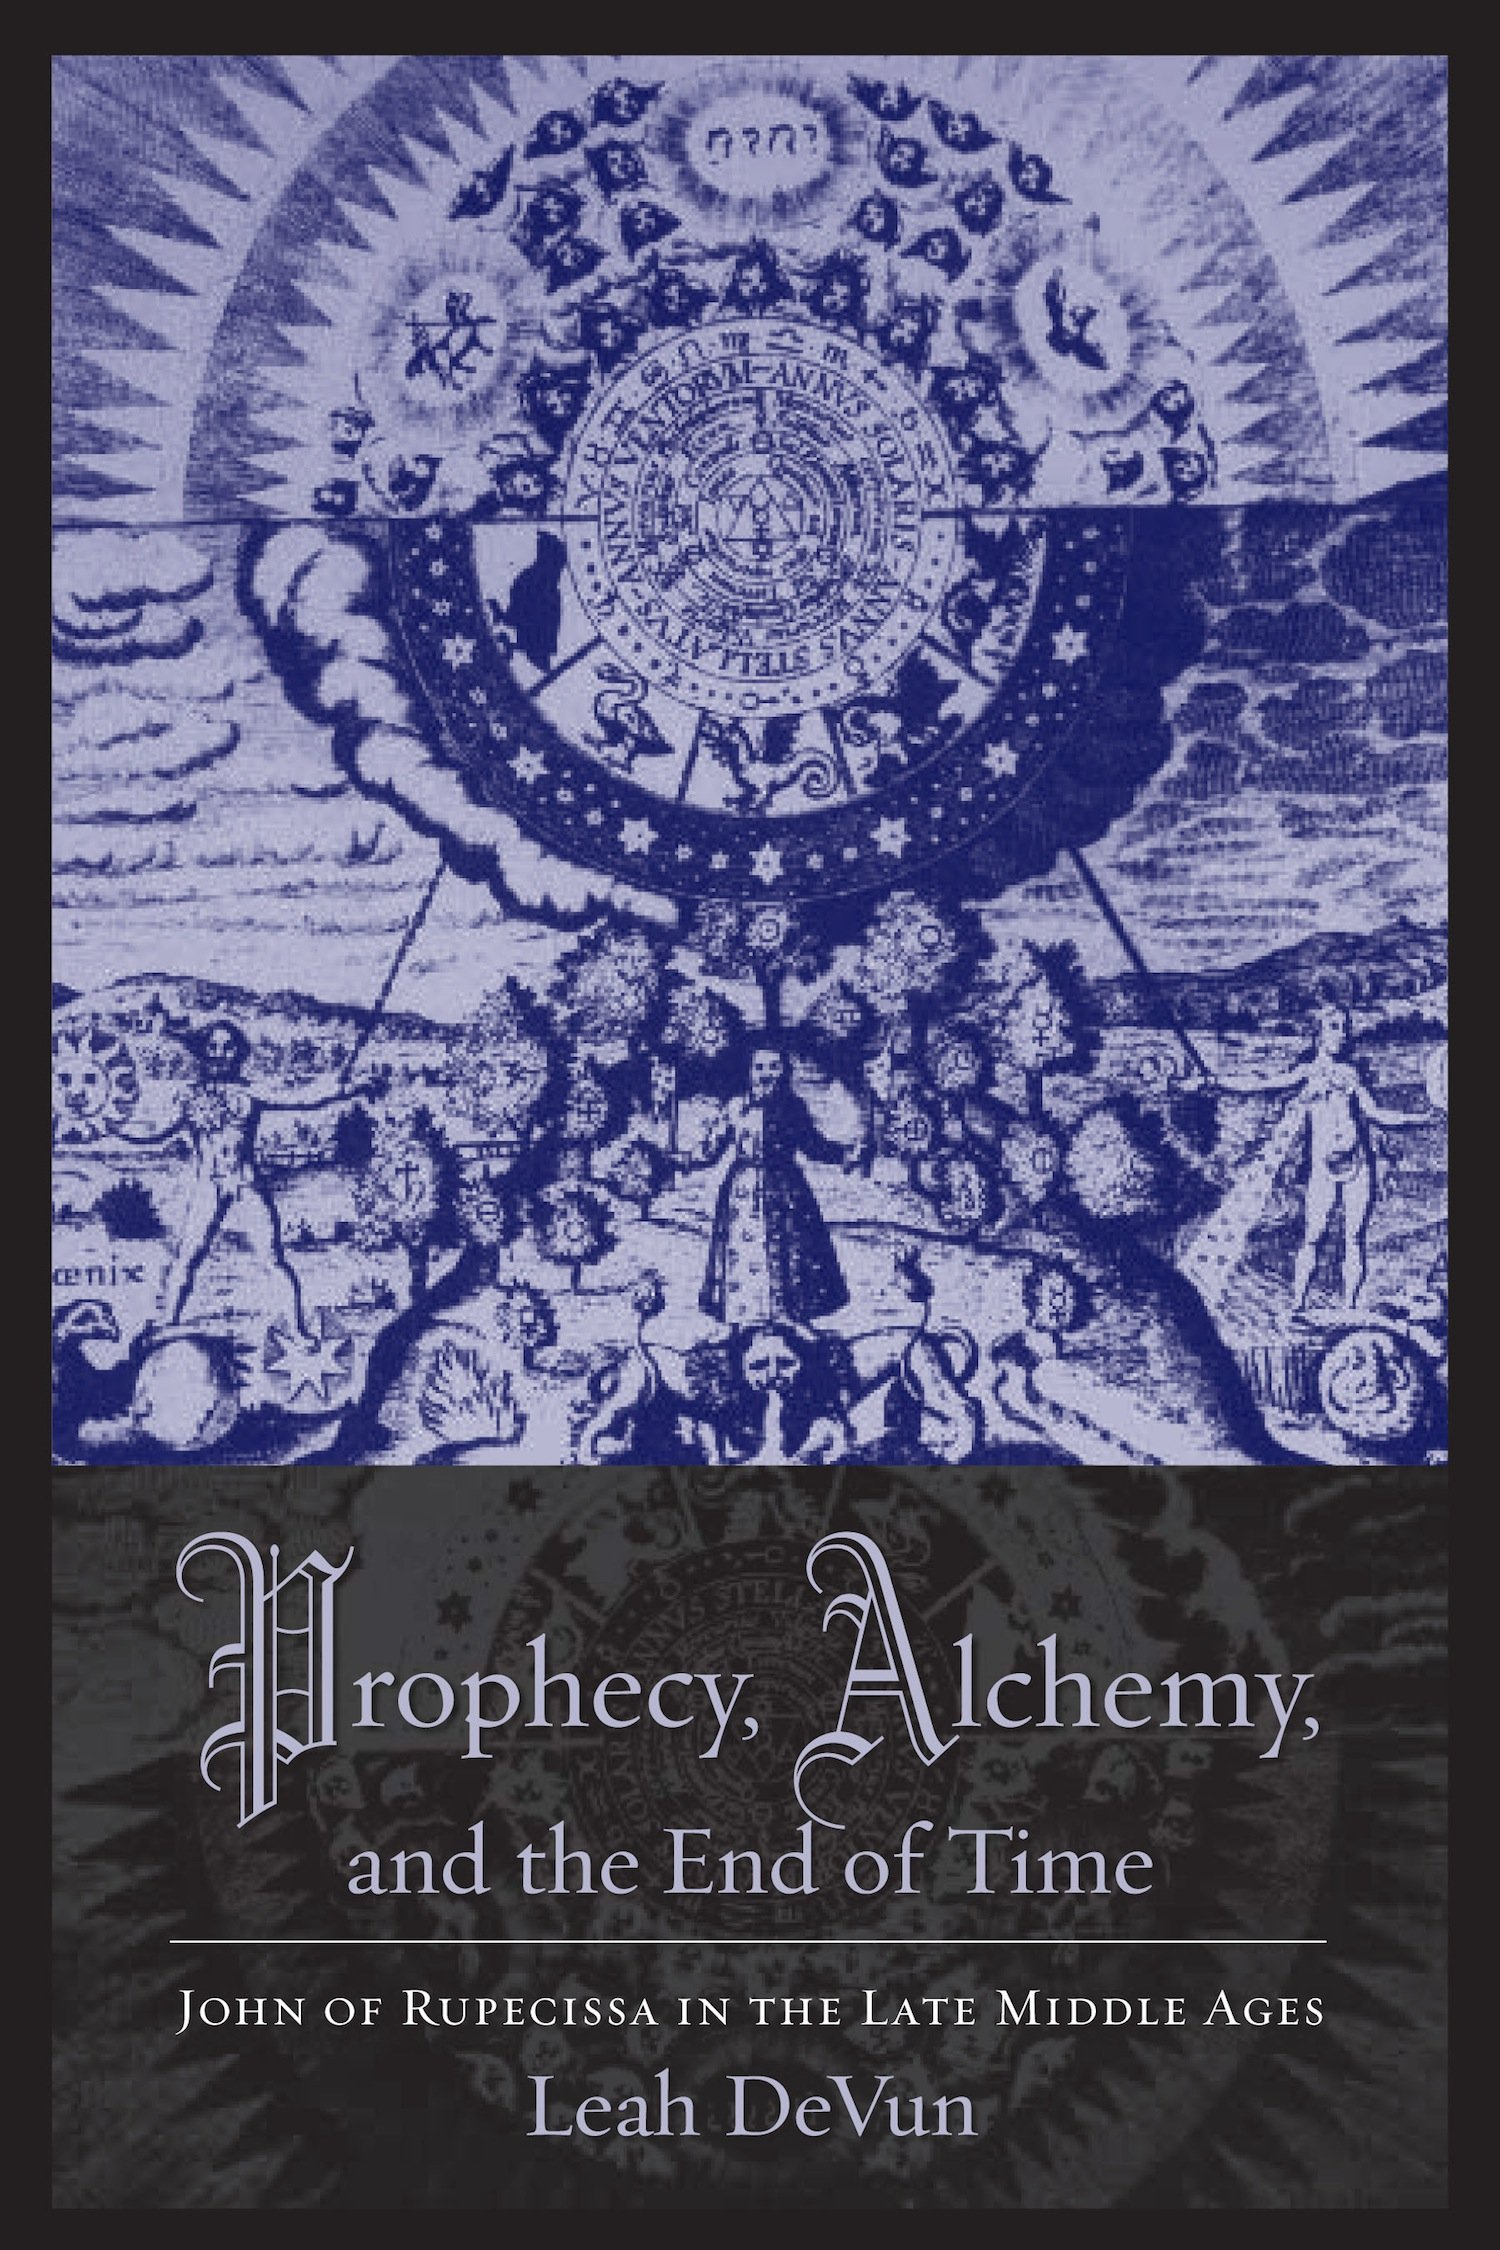 Image OfProphecy, Alchemy, And The End Of Time: John Of Rupescissa In The Late Middle Ages